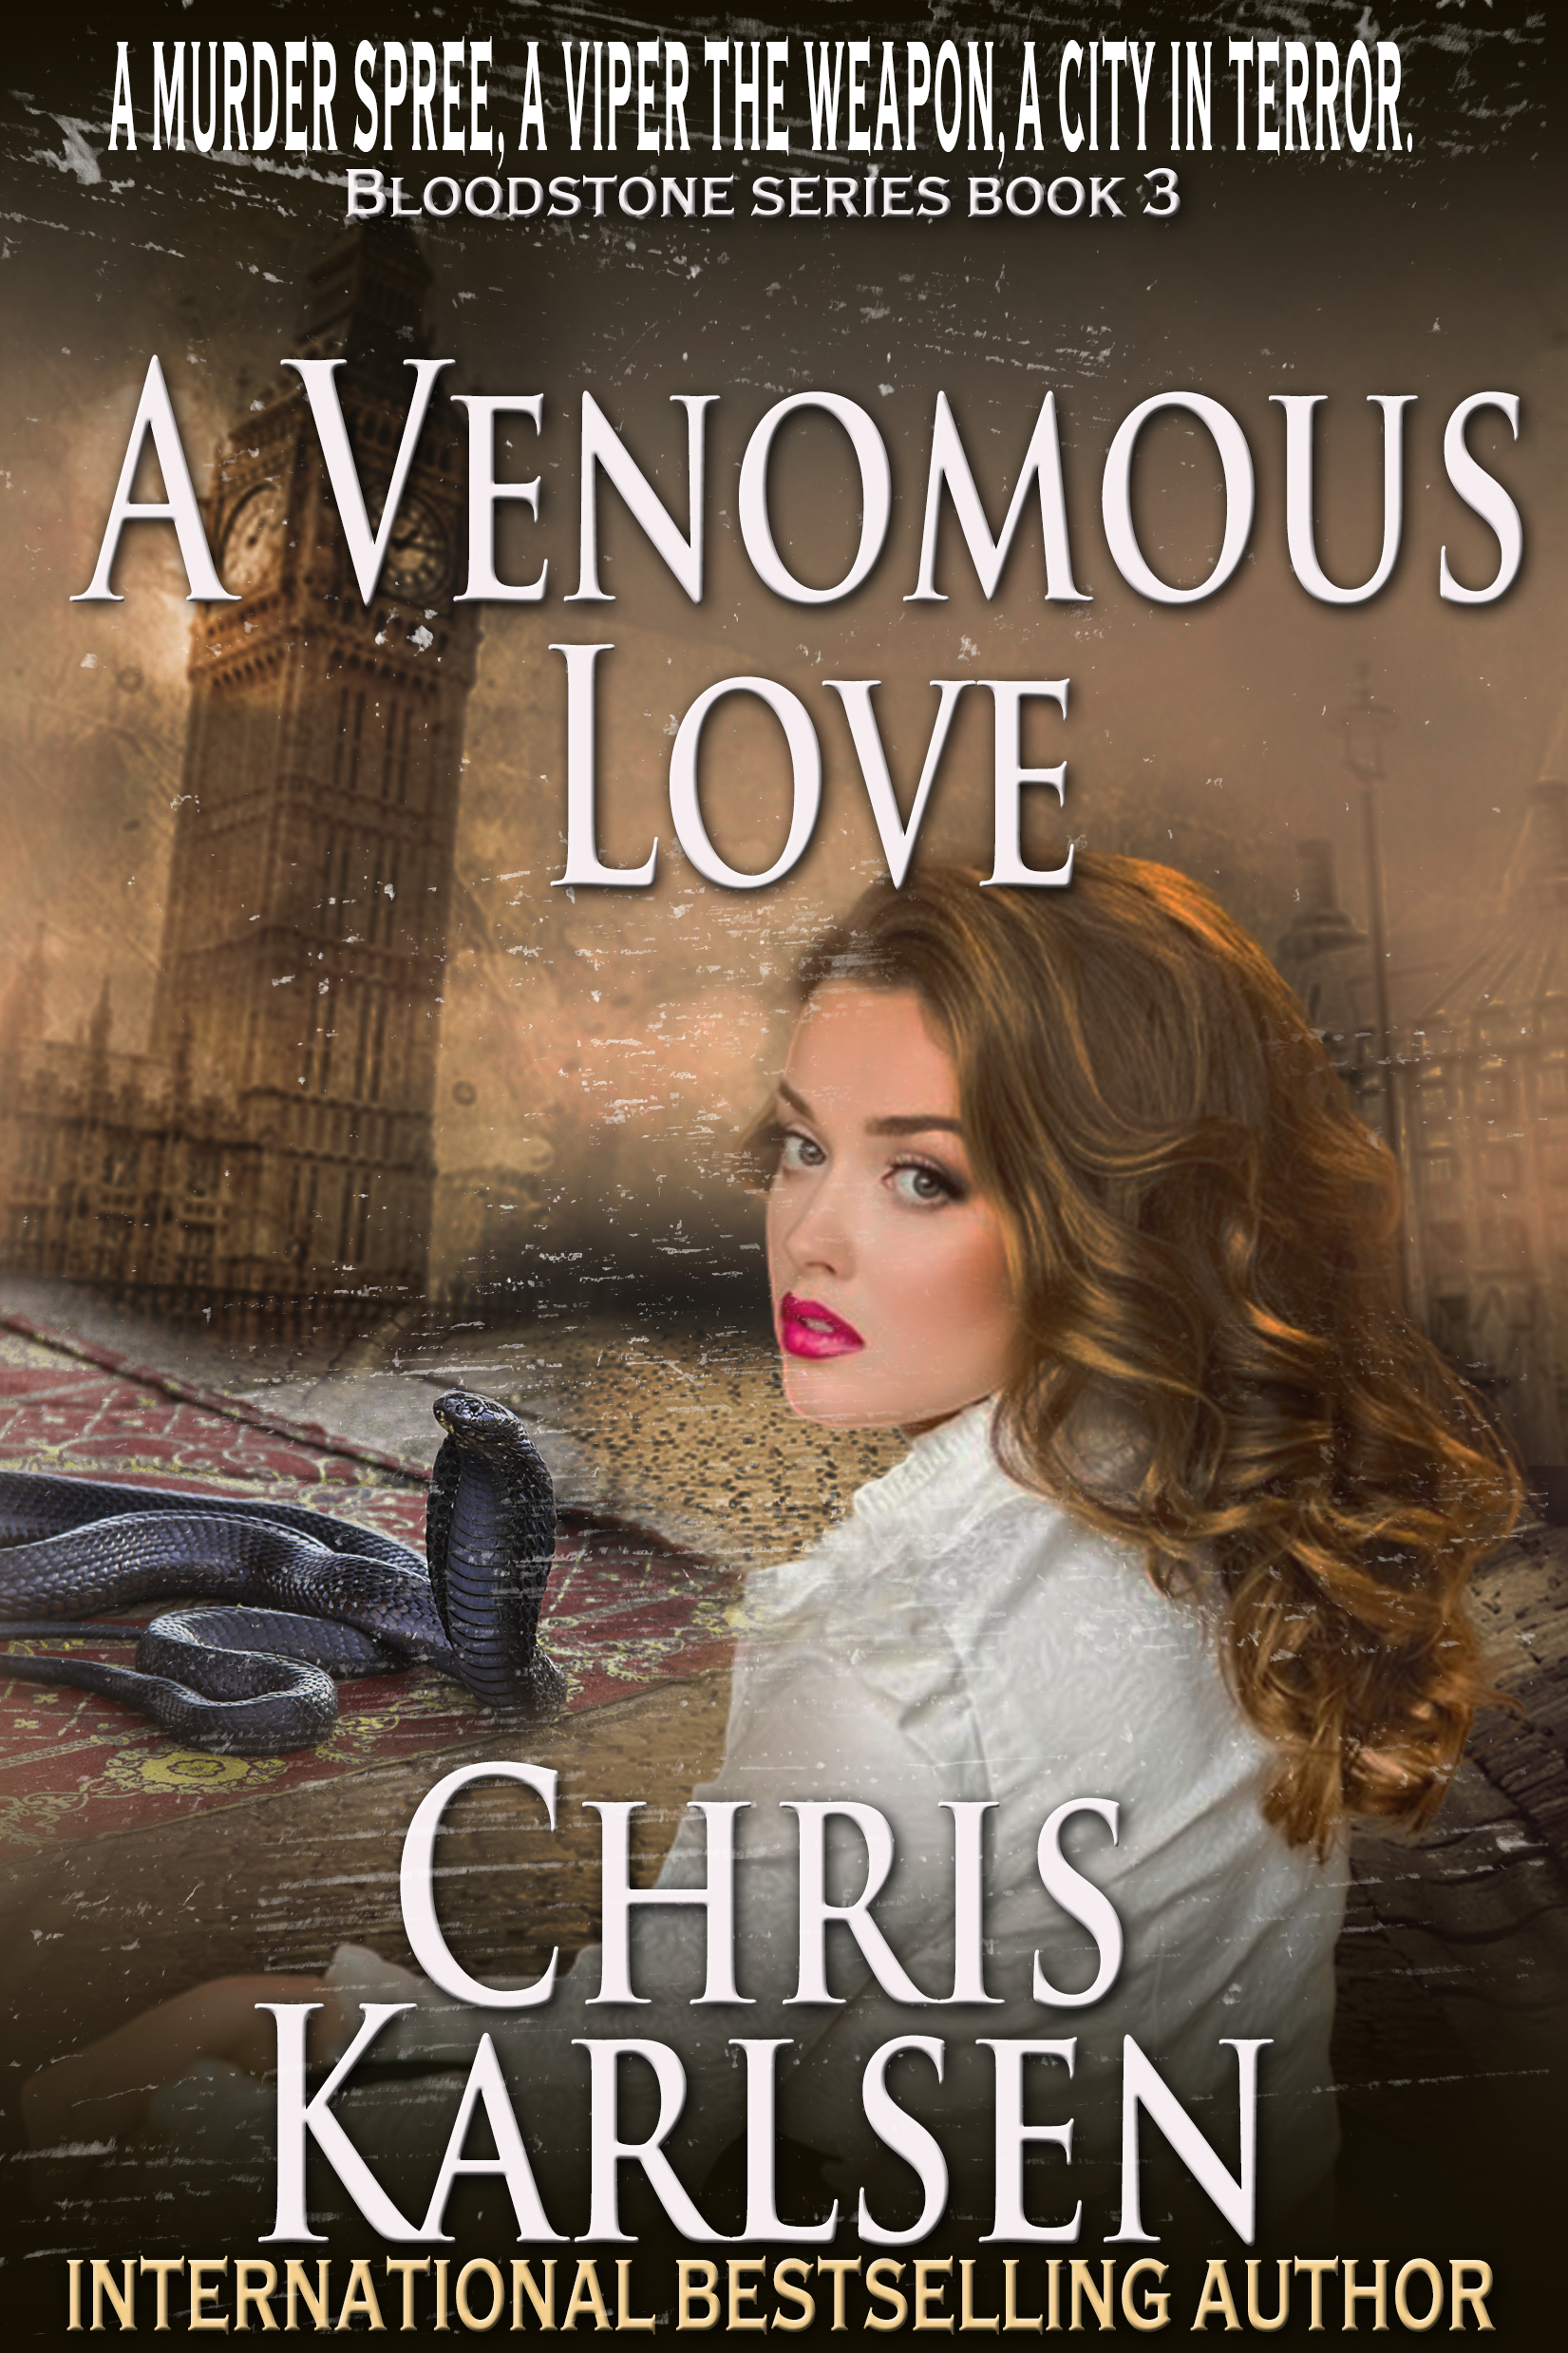 A Venomous Love by Chris Karlsen